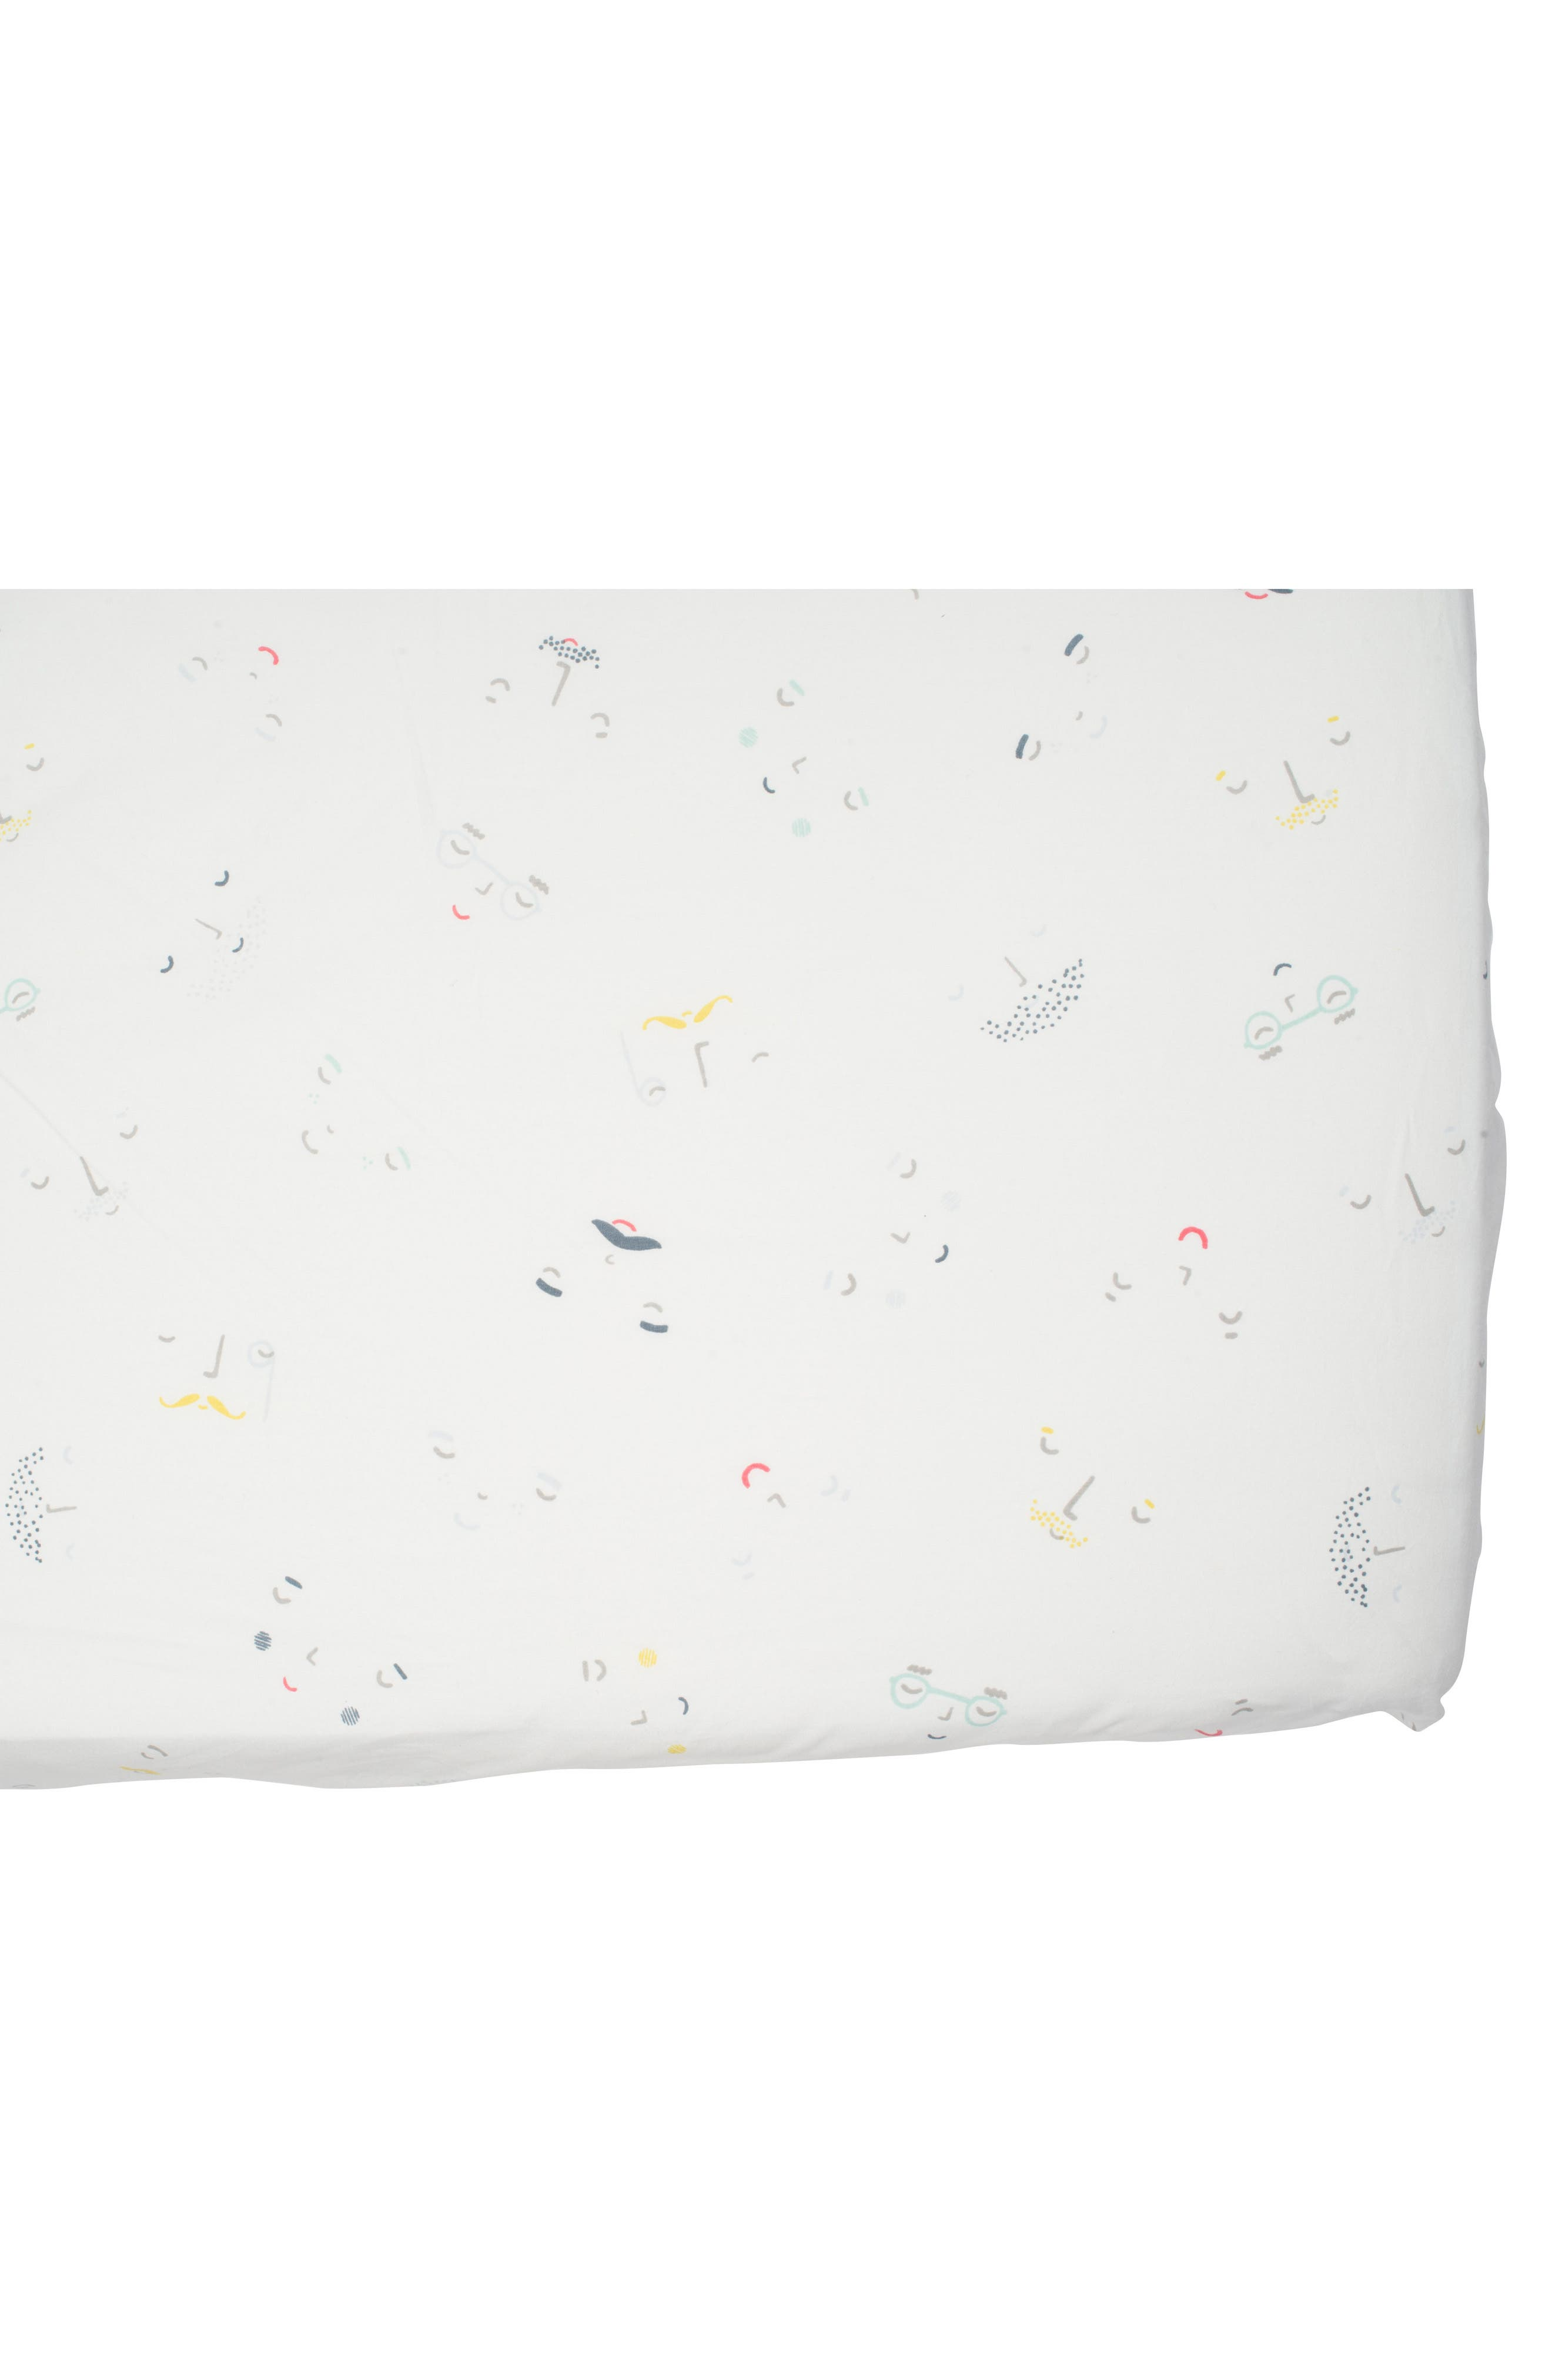 Peekaboo Crib Sheet,                         Main,                         color, Ivory